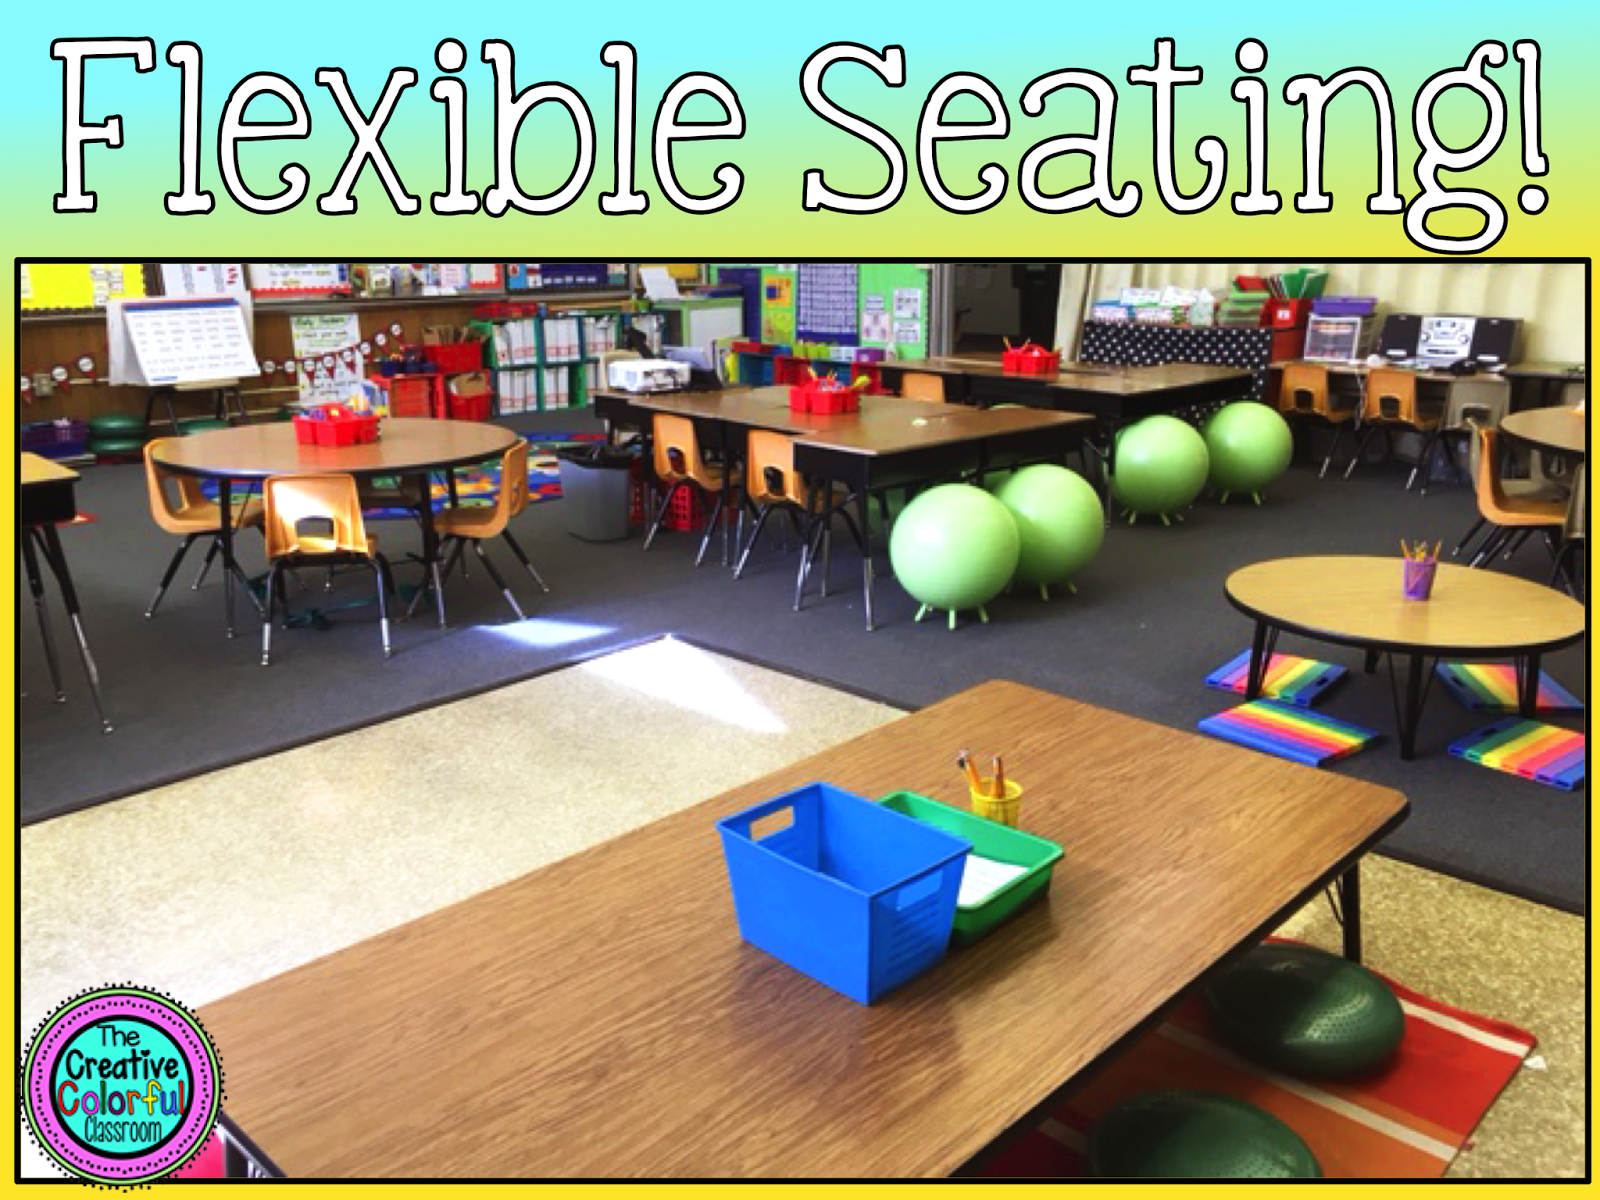 Chair Gym Setup Sports Authority Chairs The Creative Colorful Classroom Flexible Seating 5